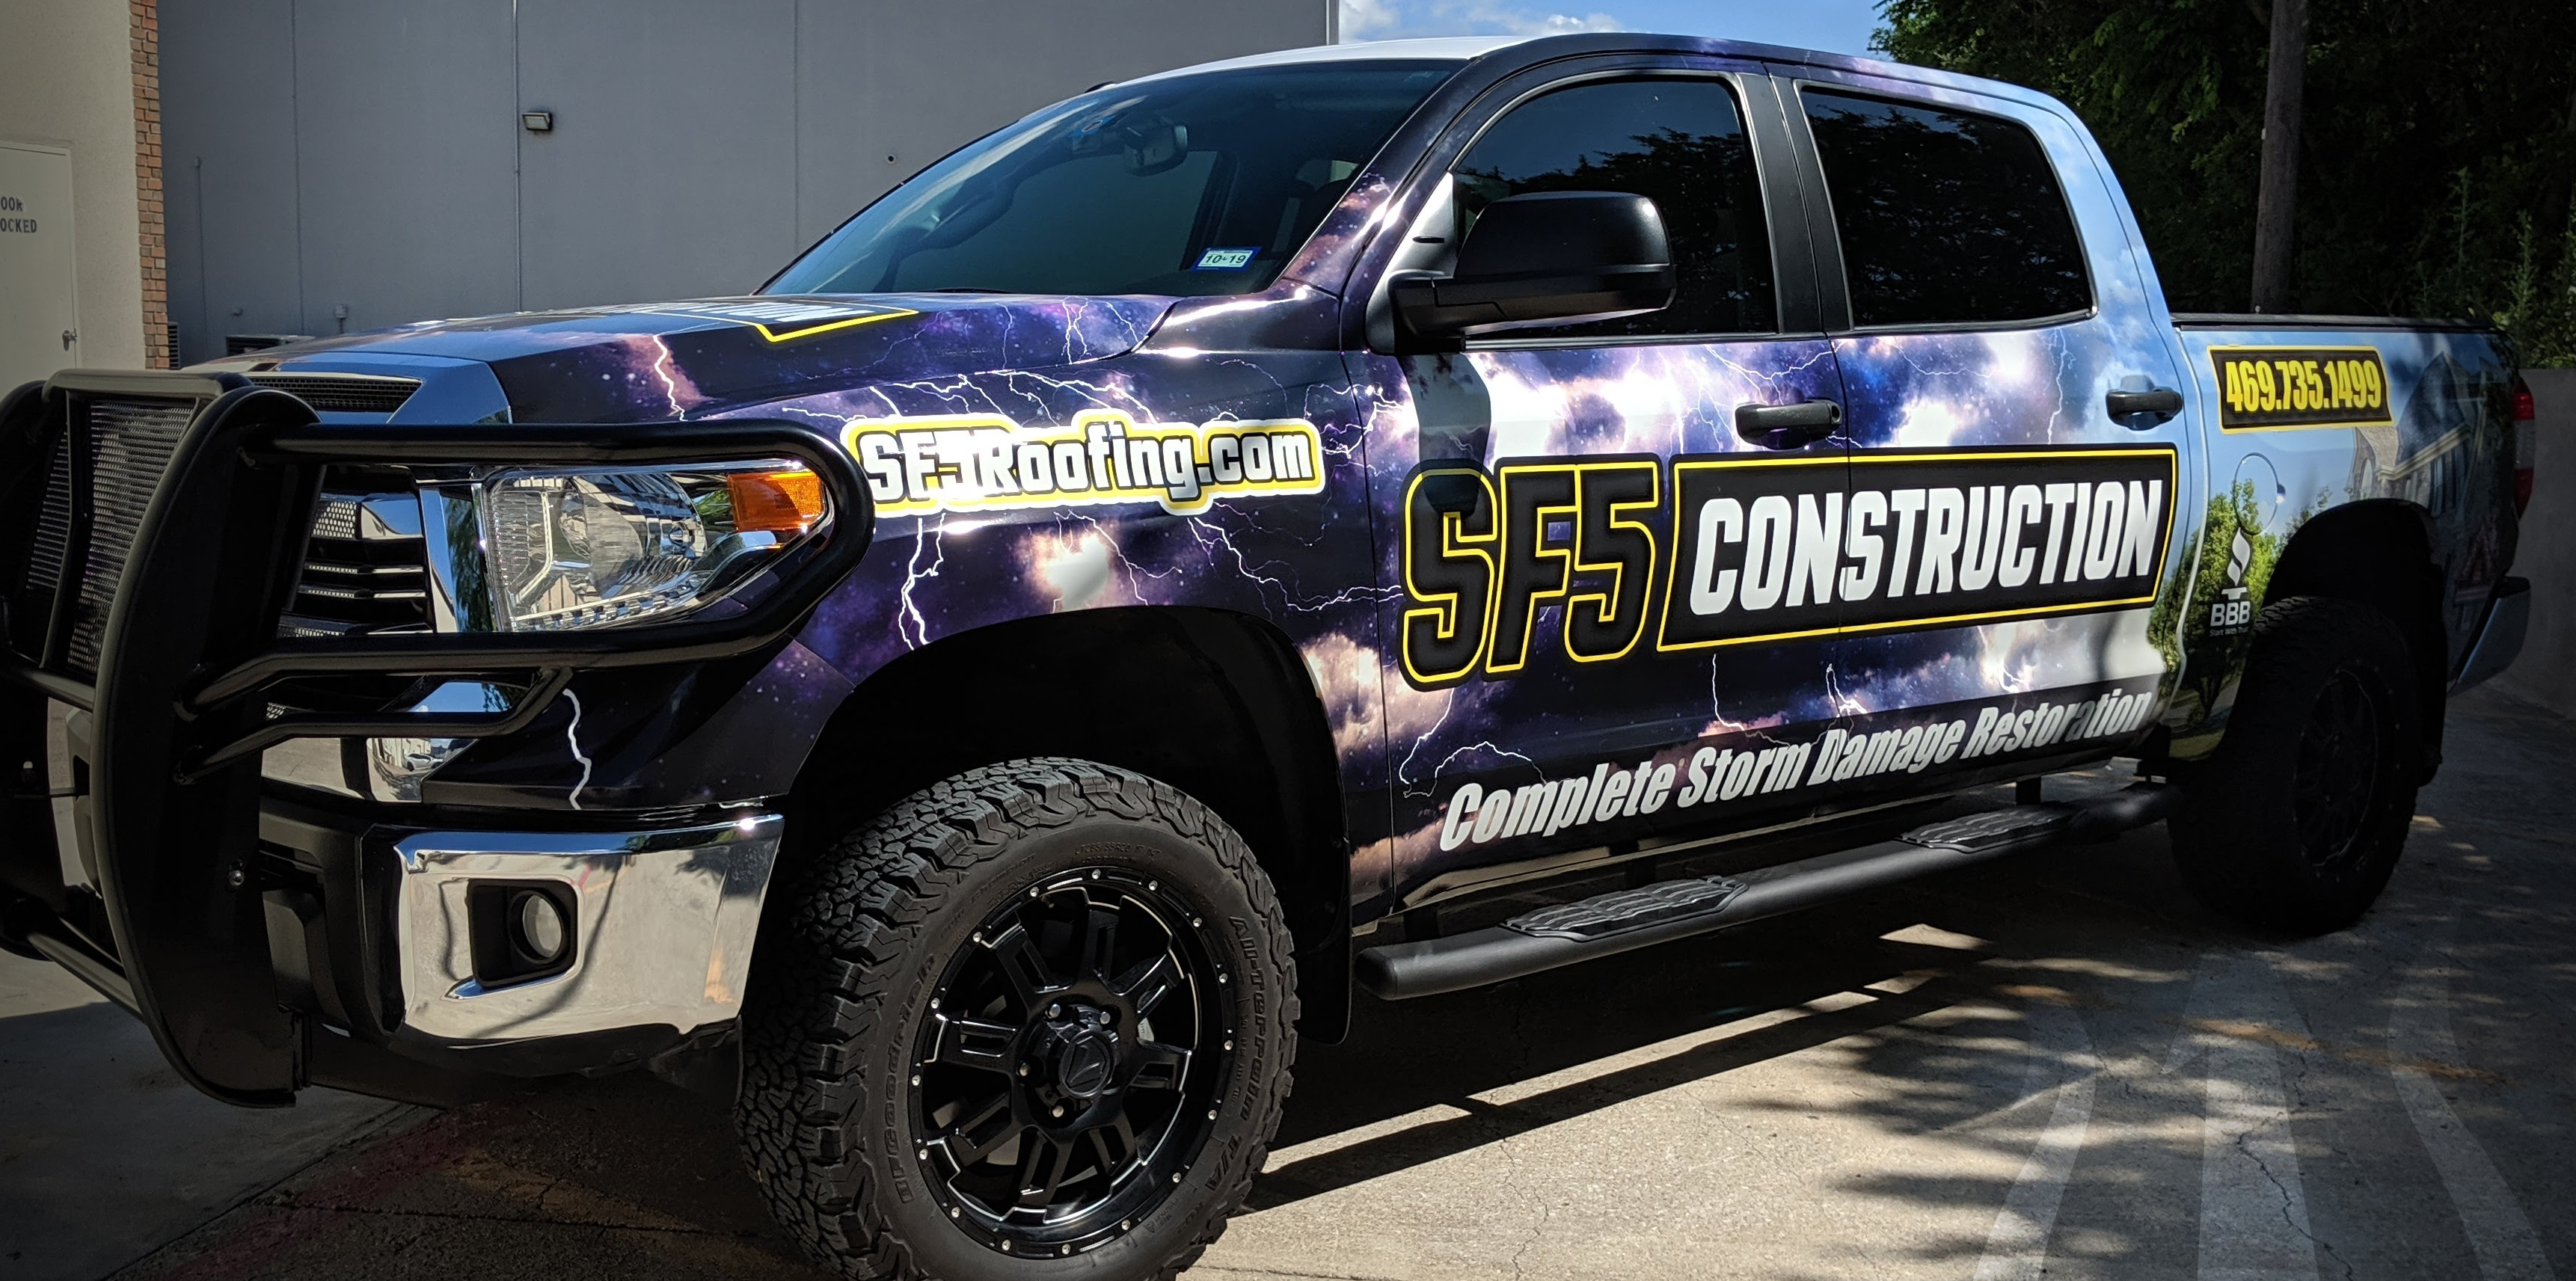 Truck Wraps in Dallas, DFW, Plano TX, Carrollton TX, Lewisville TX